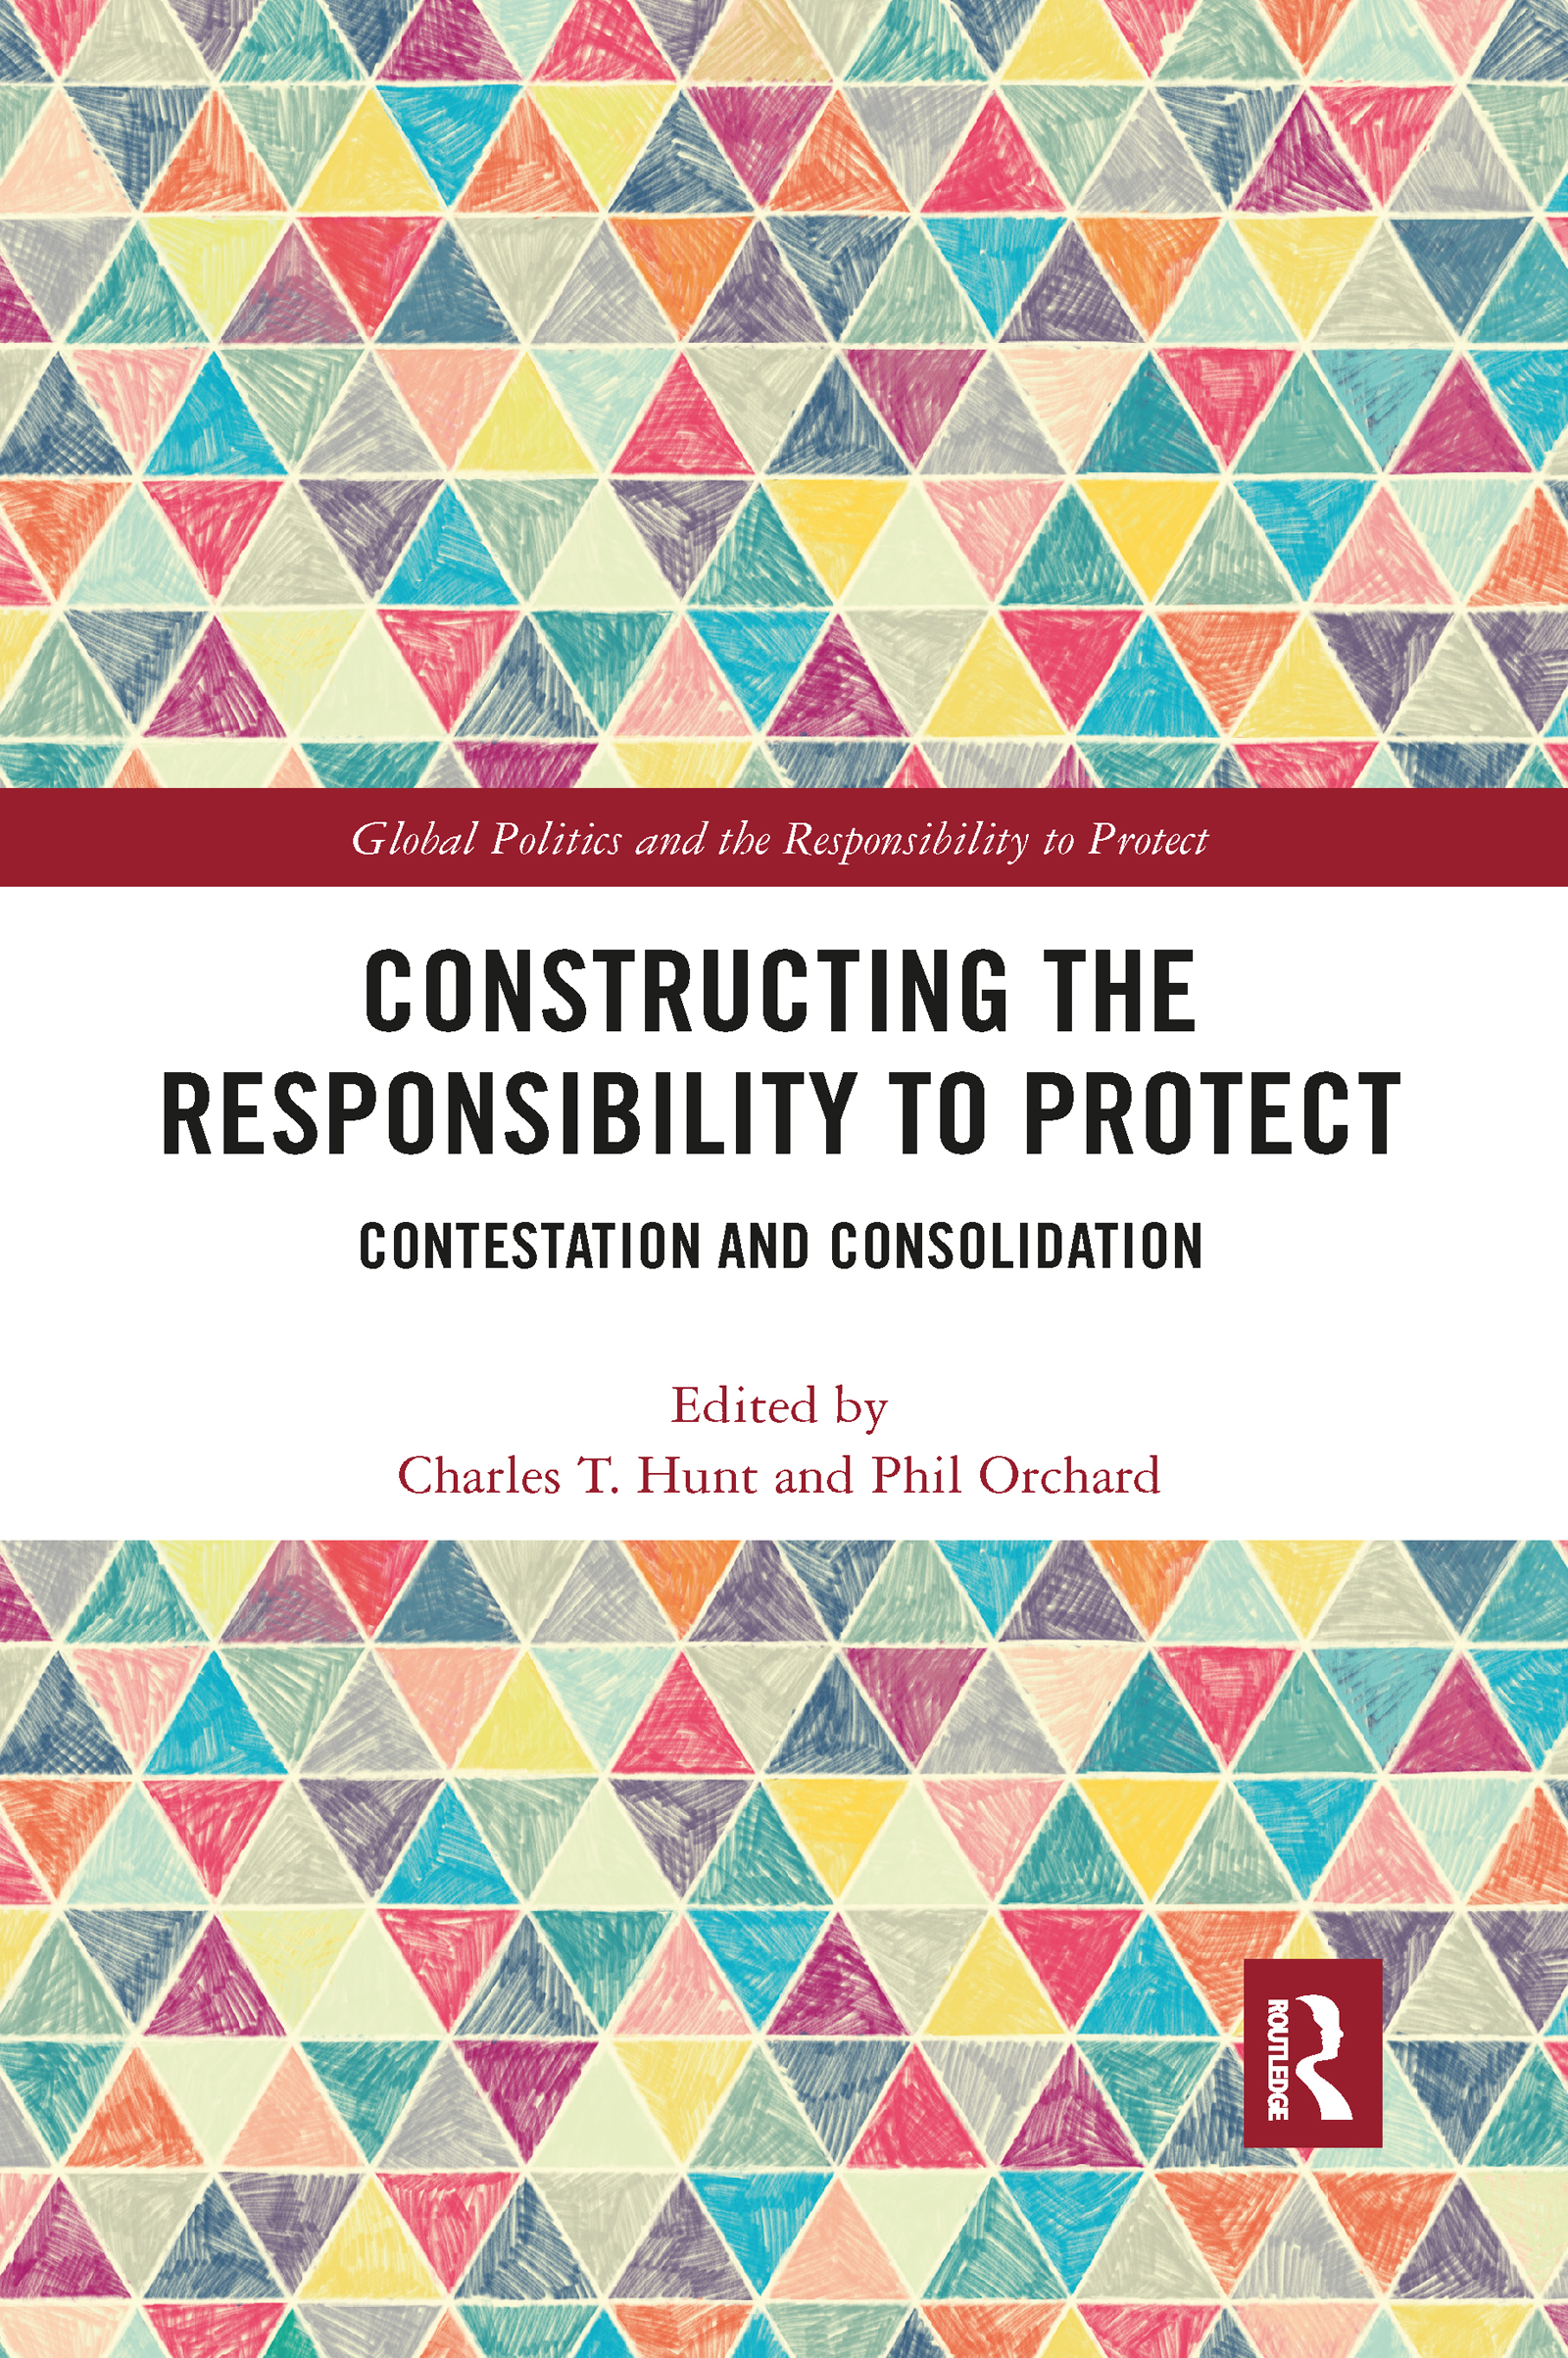 Constructing the Responsibility to Protect